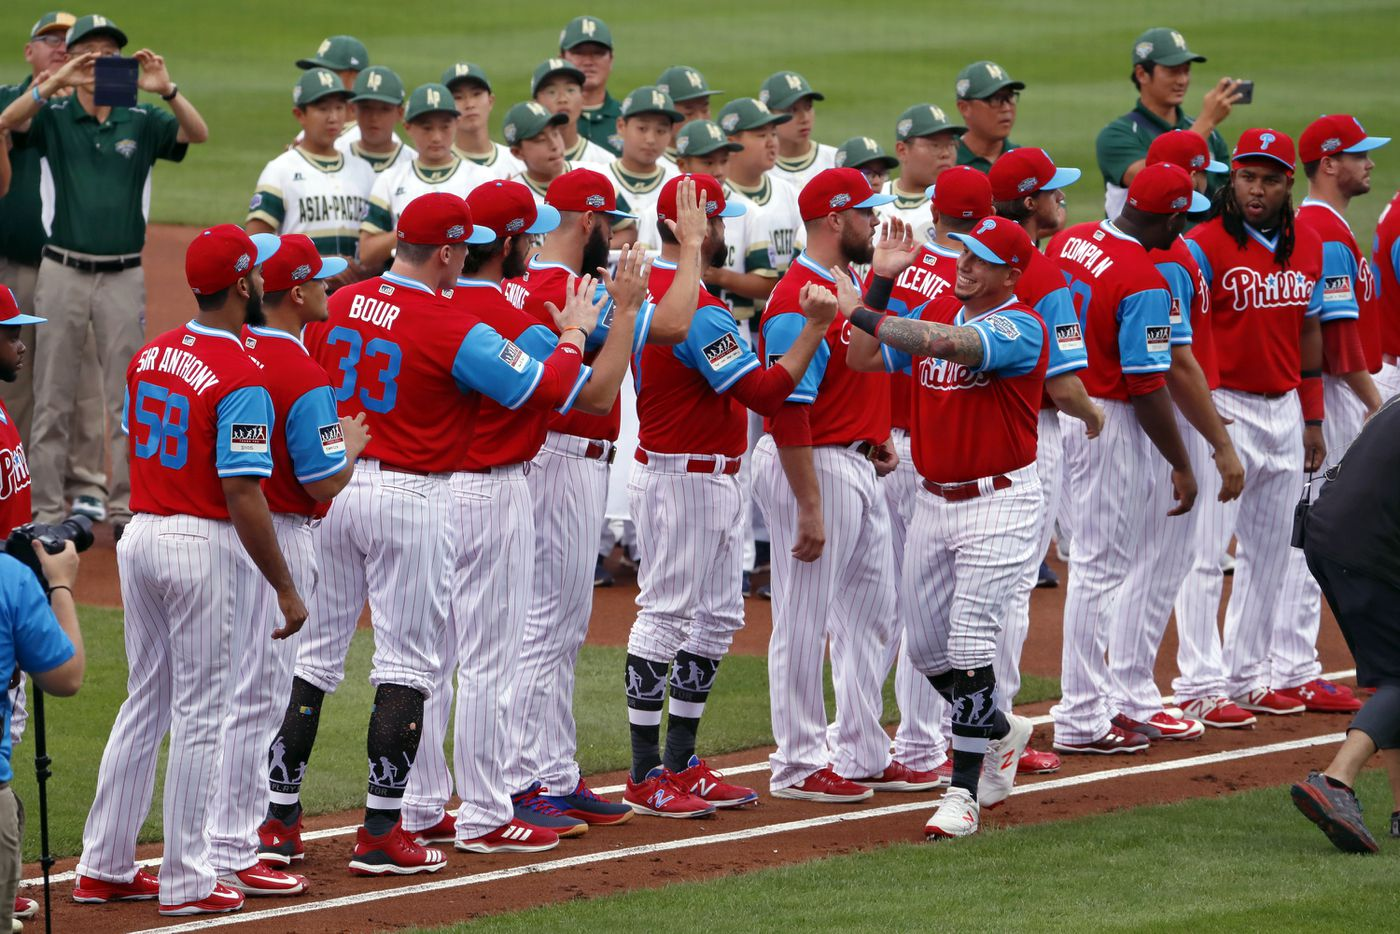 d1db0fdd2 Philadelphia Phillies  Asdrubal Cabrera takes his place along the first  baseline with teammates after being